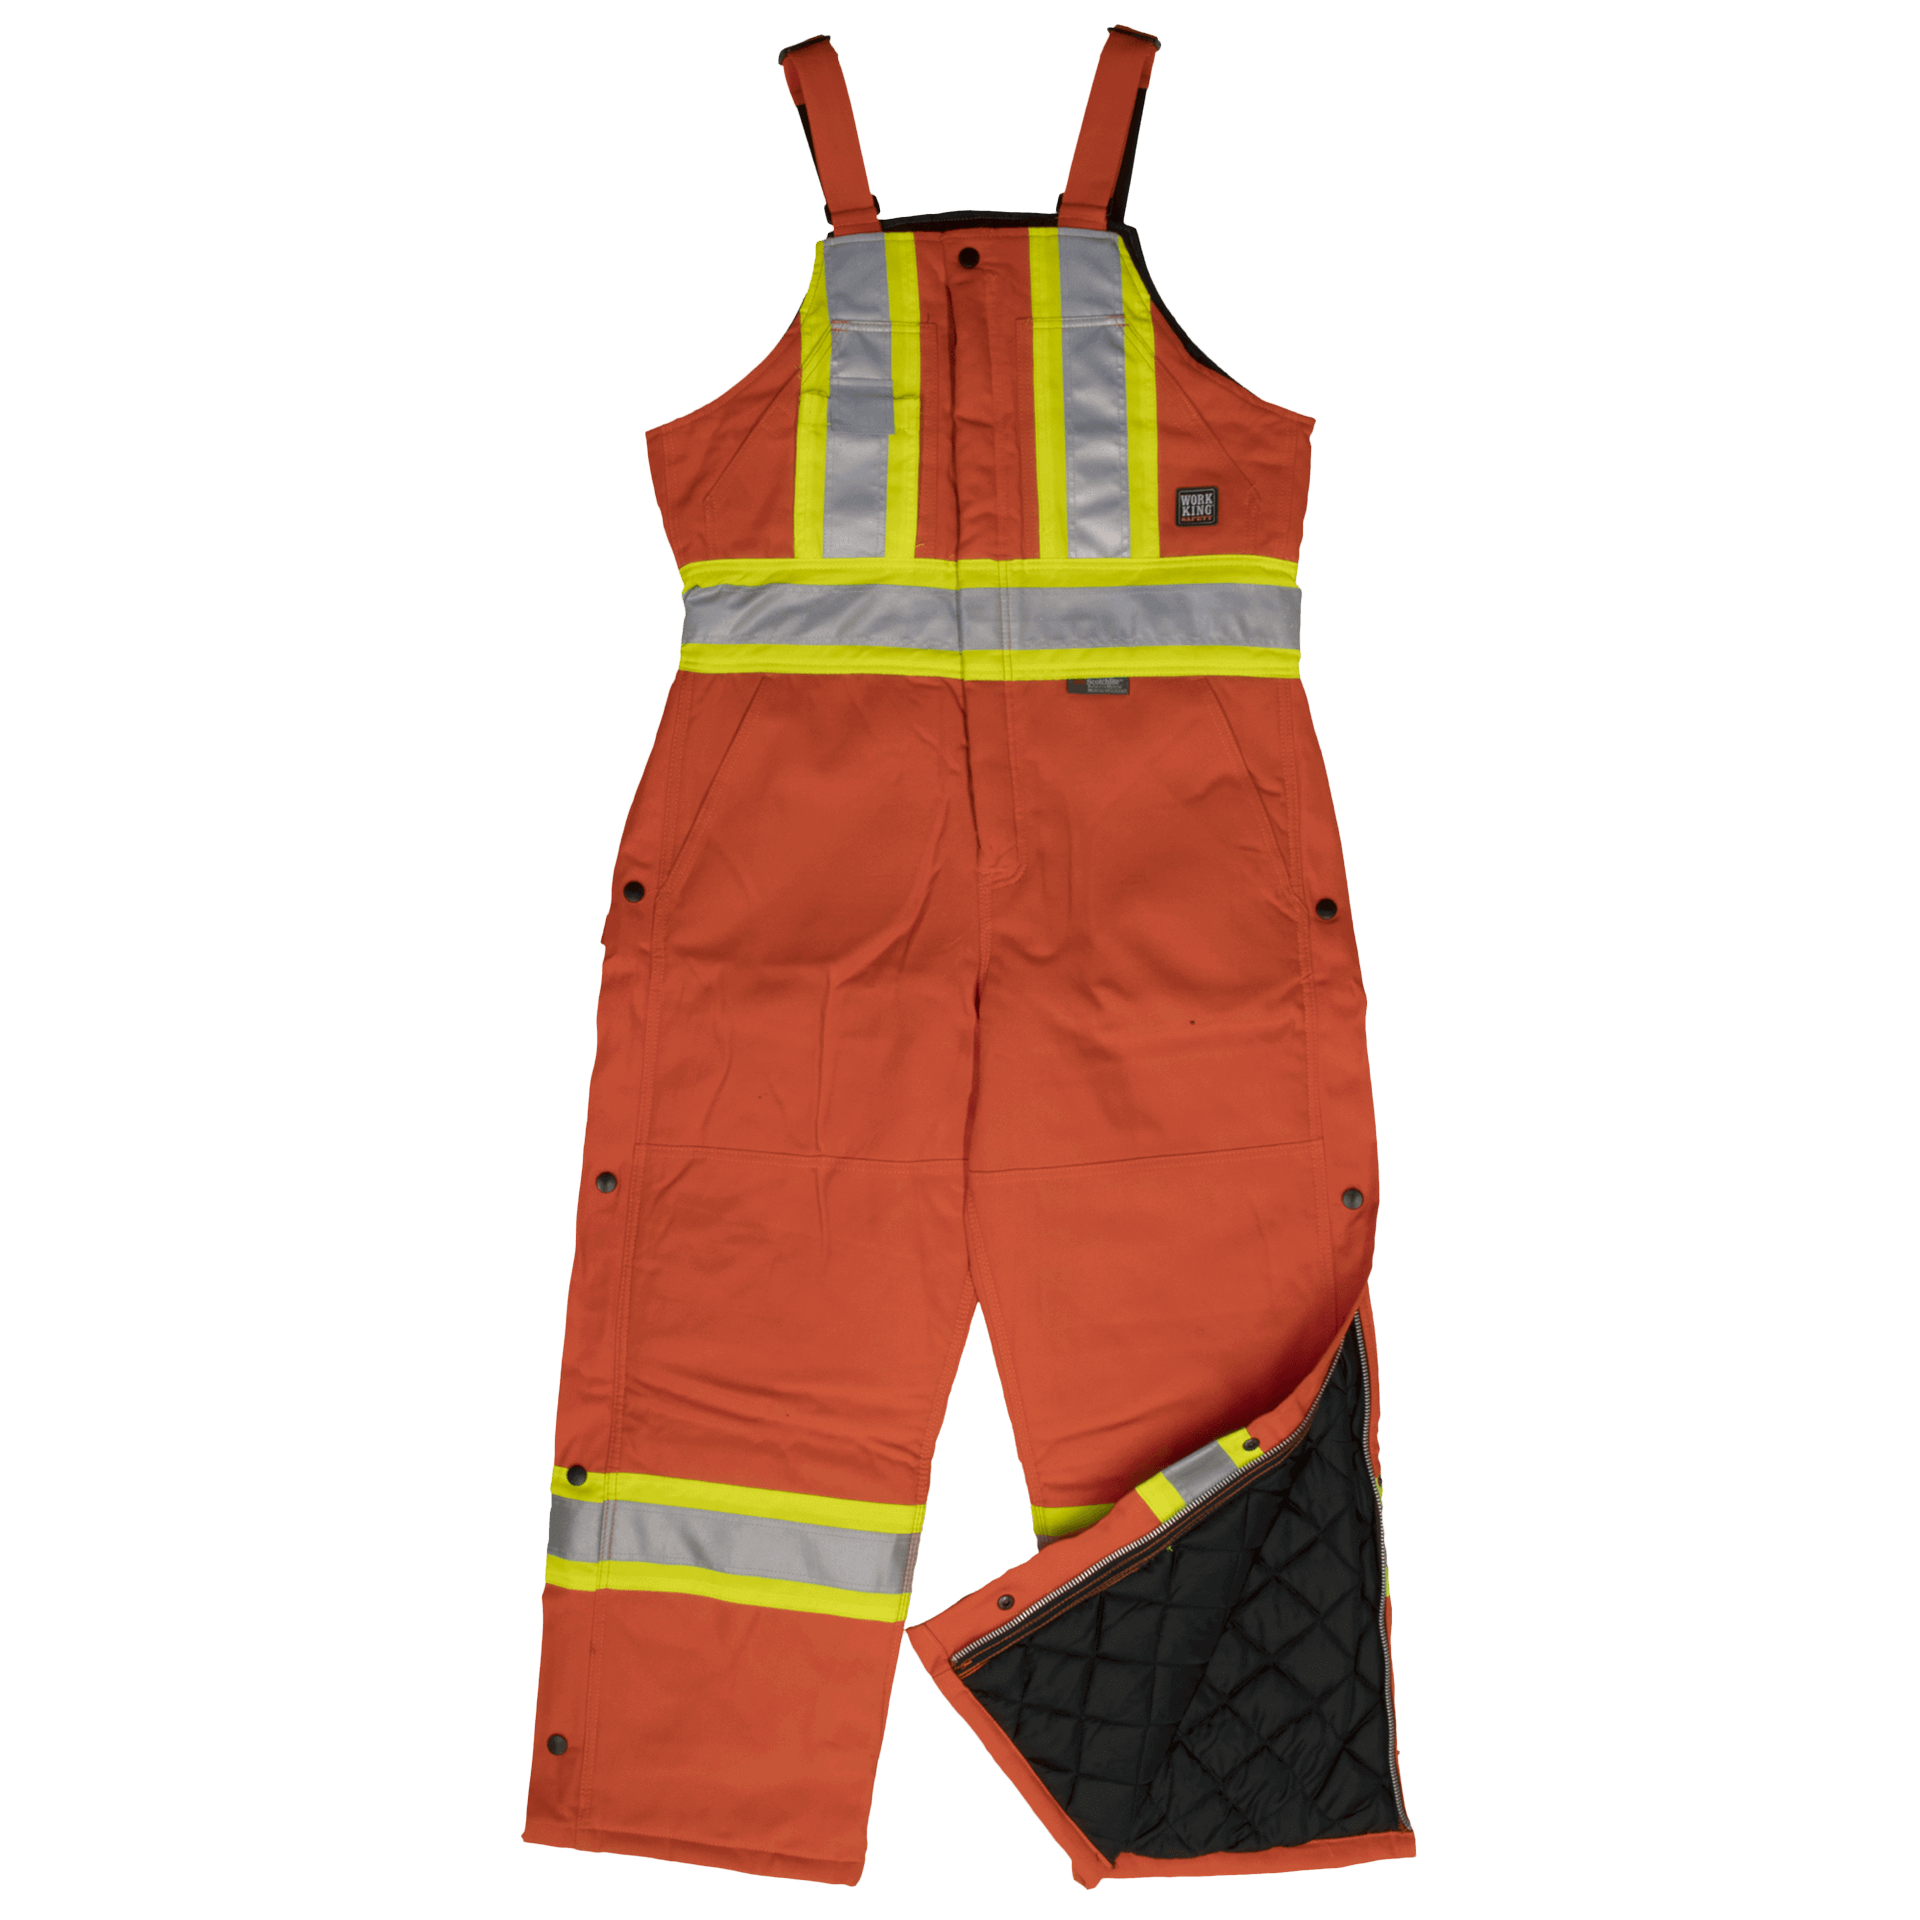 Work King Hi-Vis Cotton Duck Lined Safety Bib Overall - S757